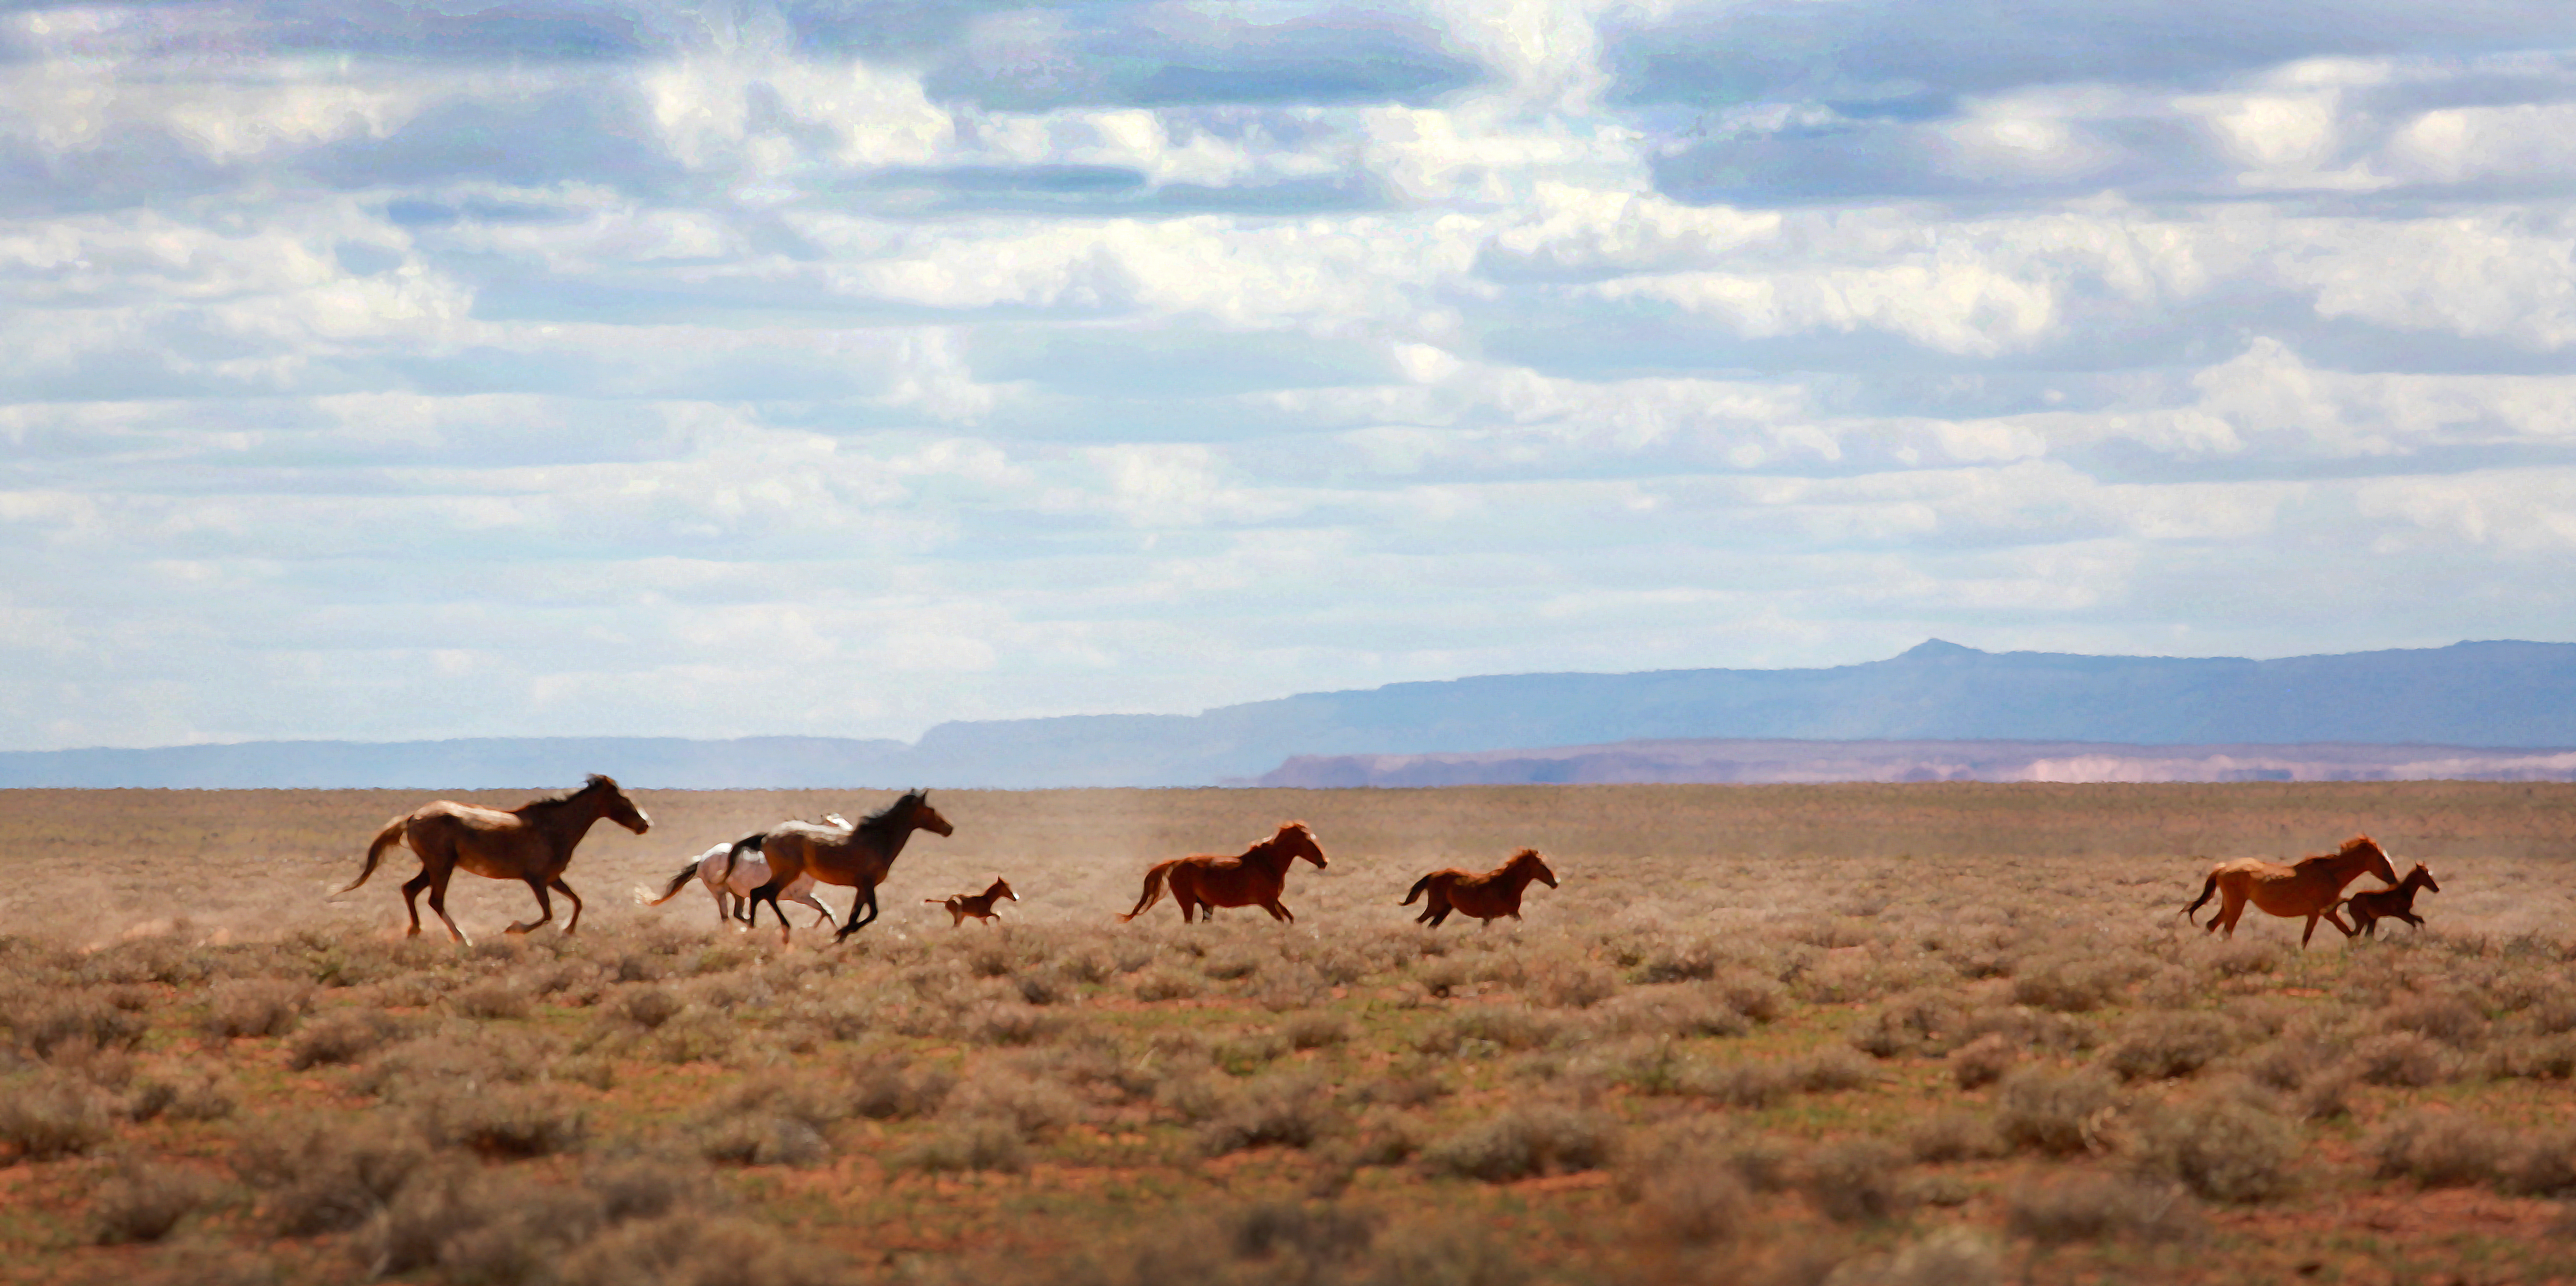 Horses and colts running wild on the Navajo Nation Indian Reservation in Arizona USA near Indian Wells